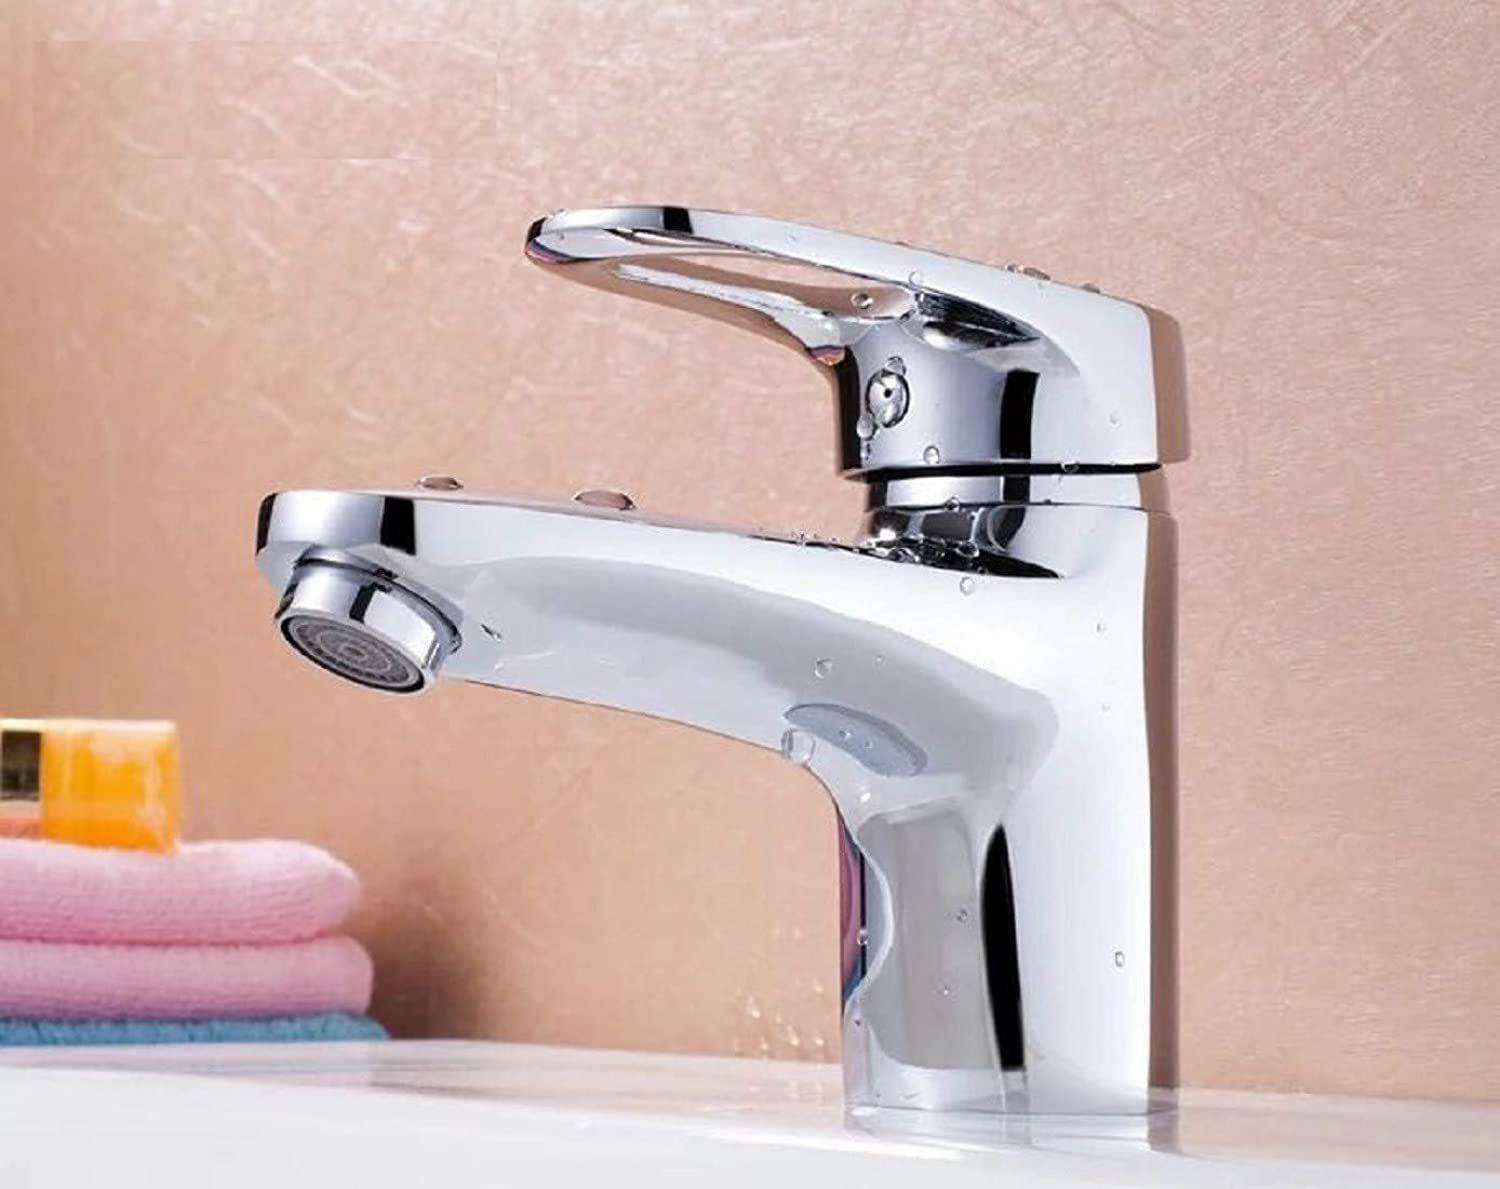 Bathroom Taps Copper Faucet Single Hot and Cold Faucet Single-Hole Basin Faucet Bathroom Sink Tap Basin Sink Mixer Tap